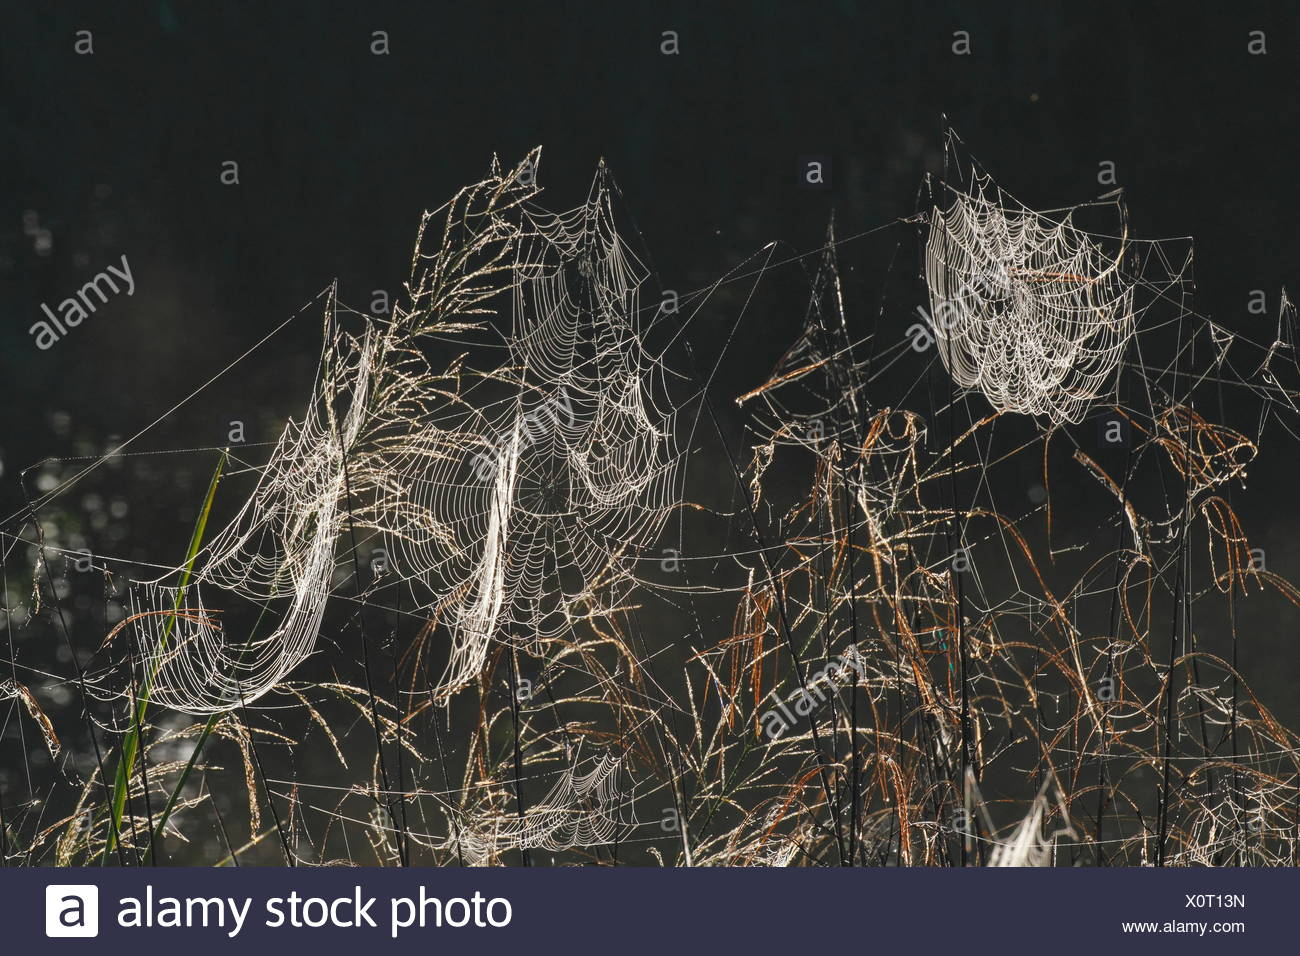 Orb spider webs in morning dew. - Stock Image